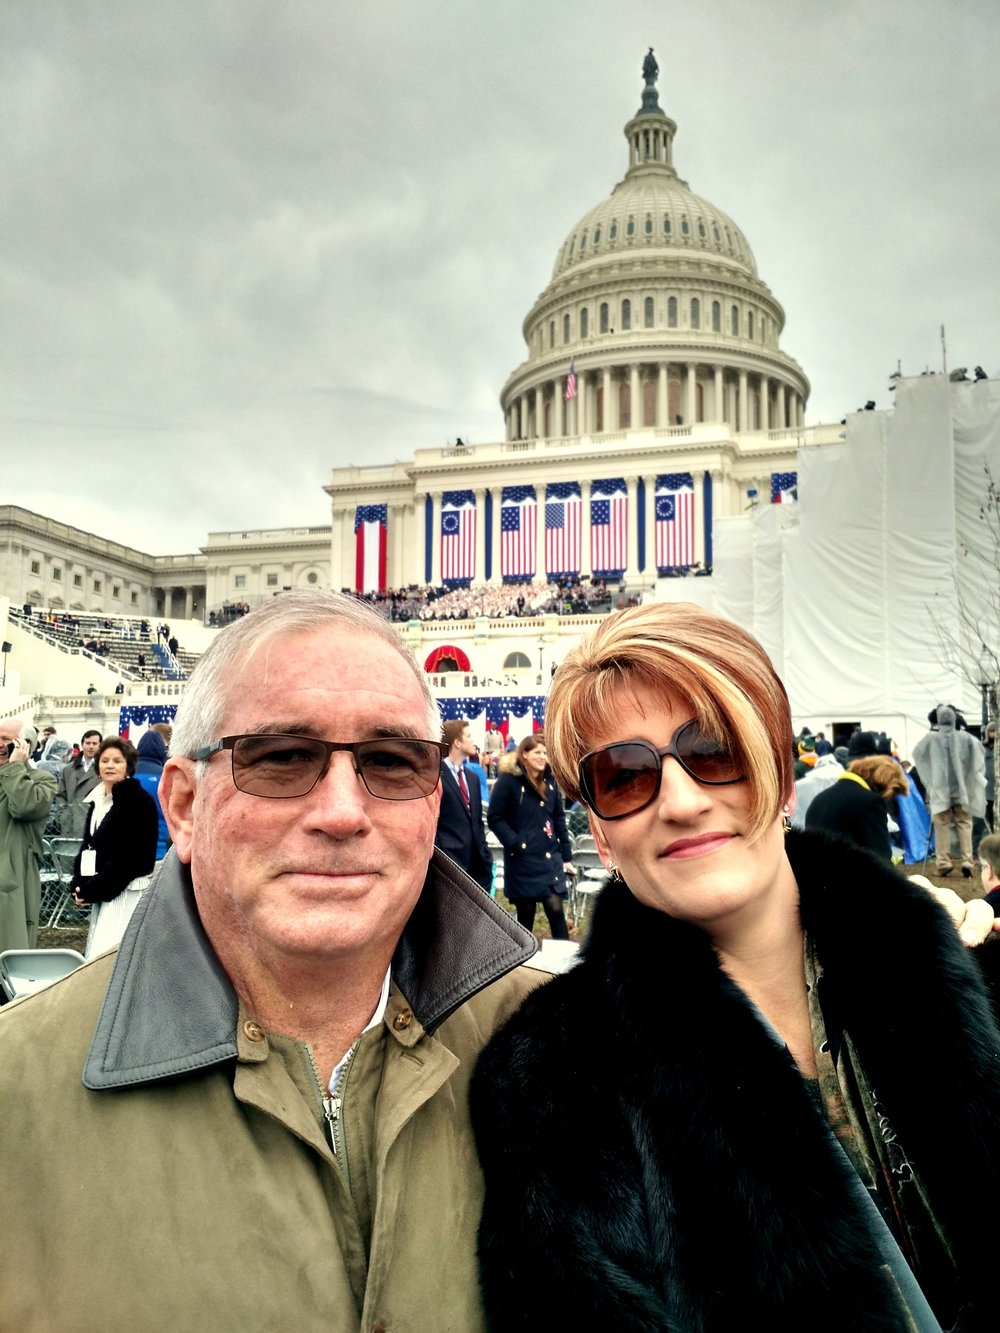 We are here at the Inauguration of President Trump